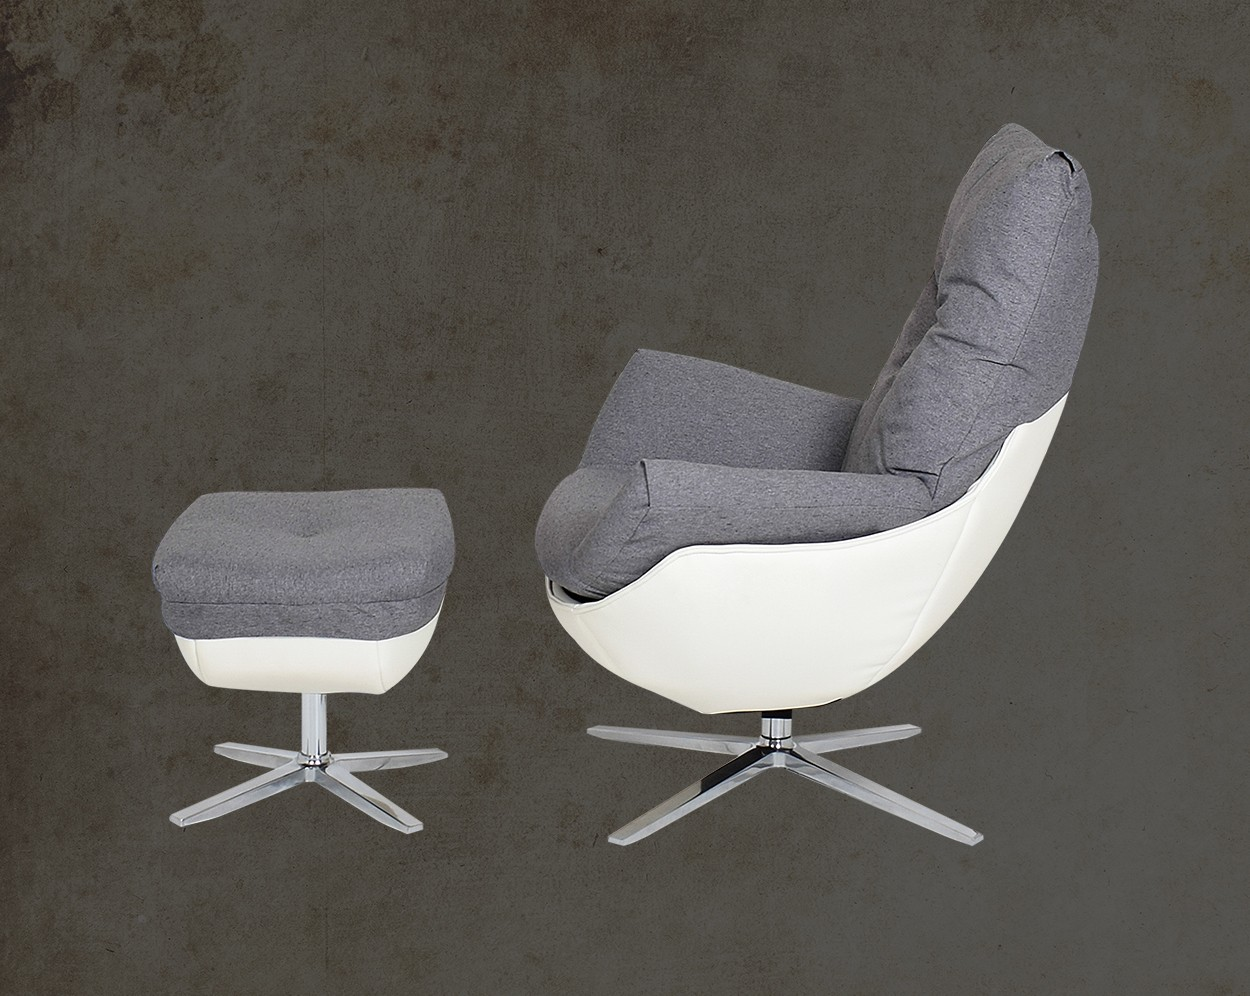 Verlin Leisure Chair With Ottoman Side View